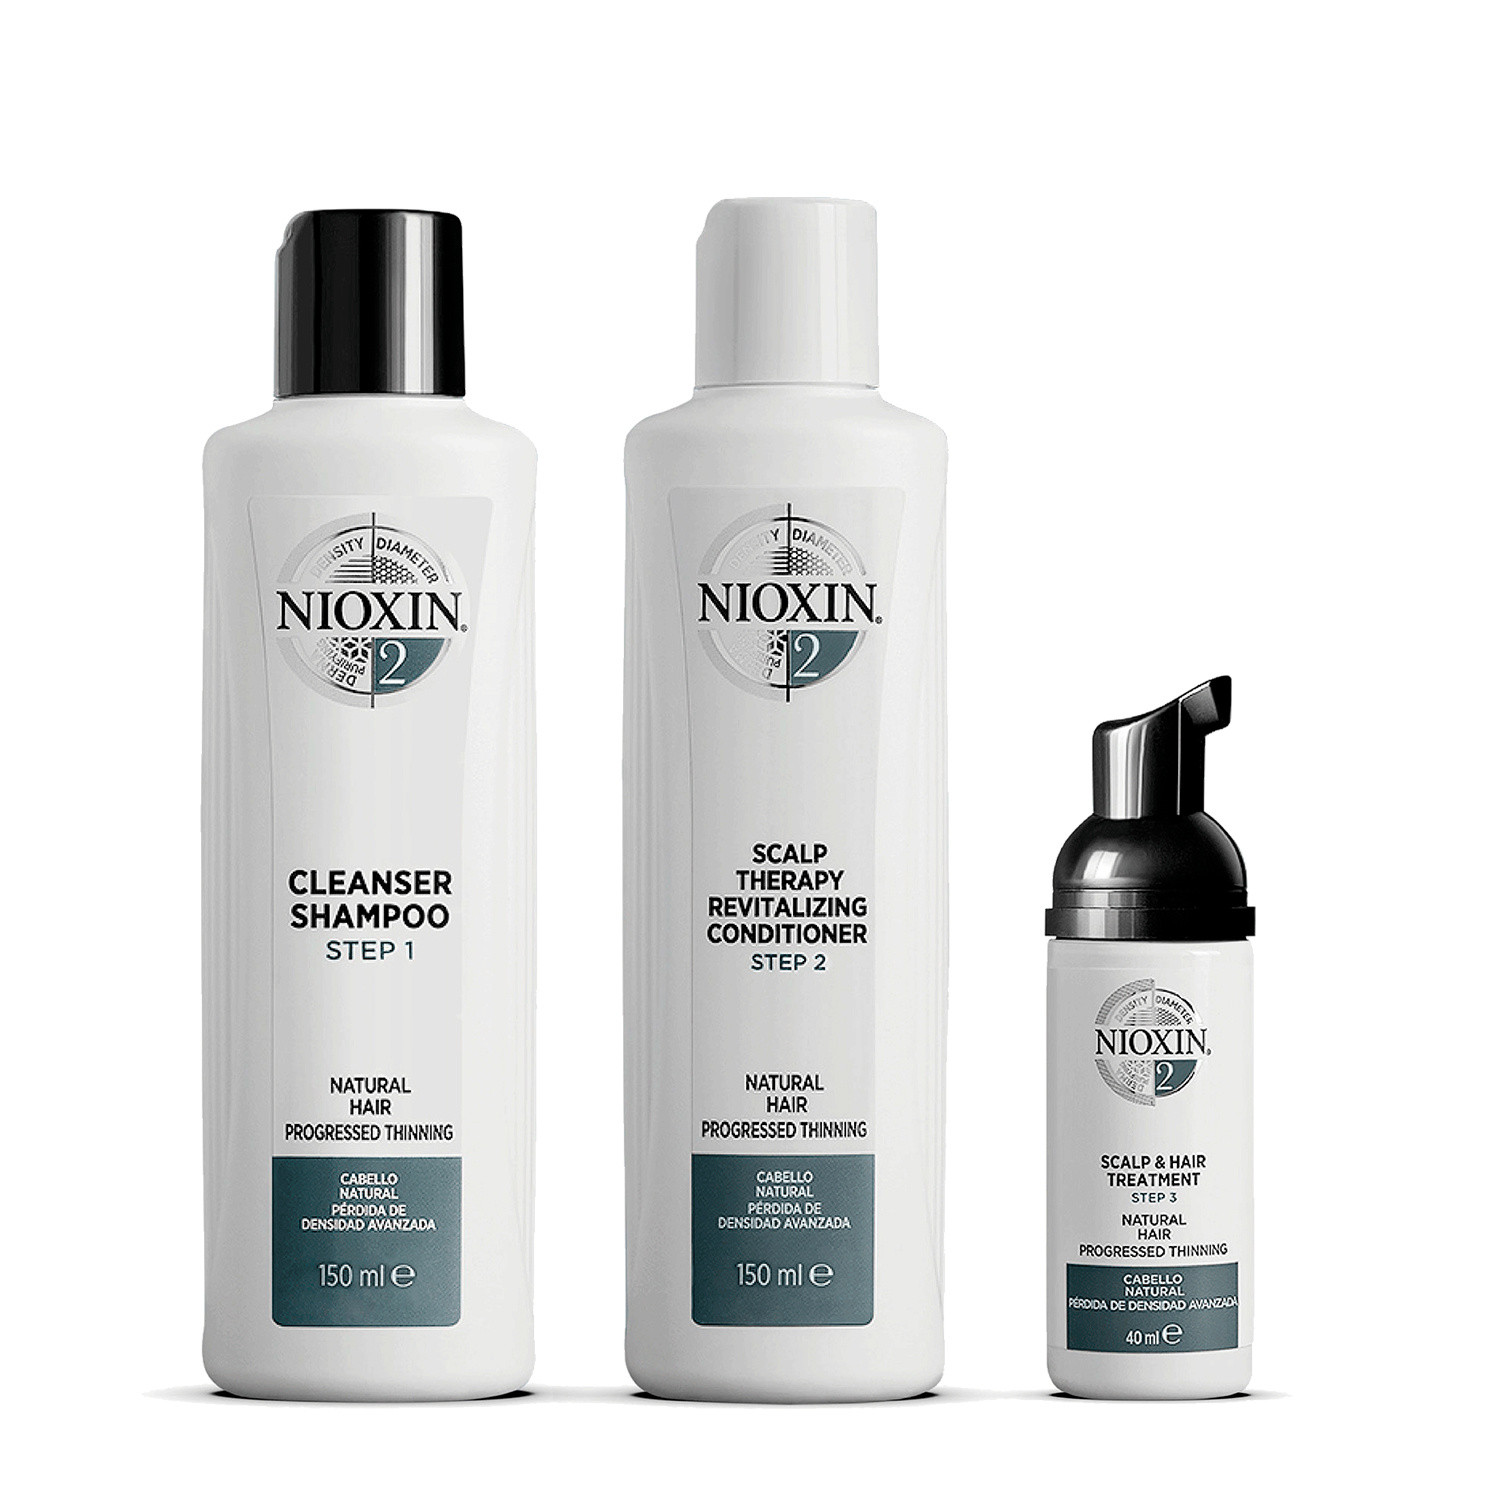 Nioxin 3 Part System 2 Trial Kit for Natural Hair with Progressed Thinning